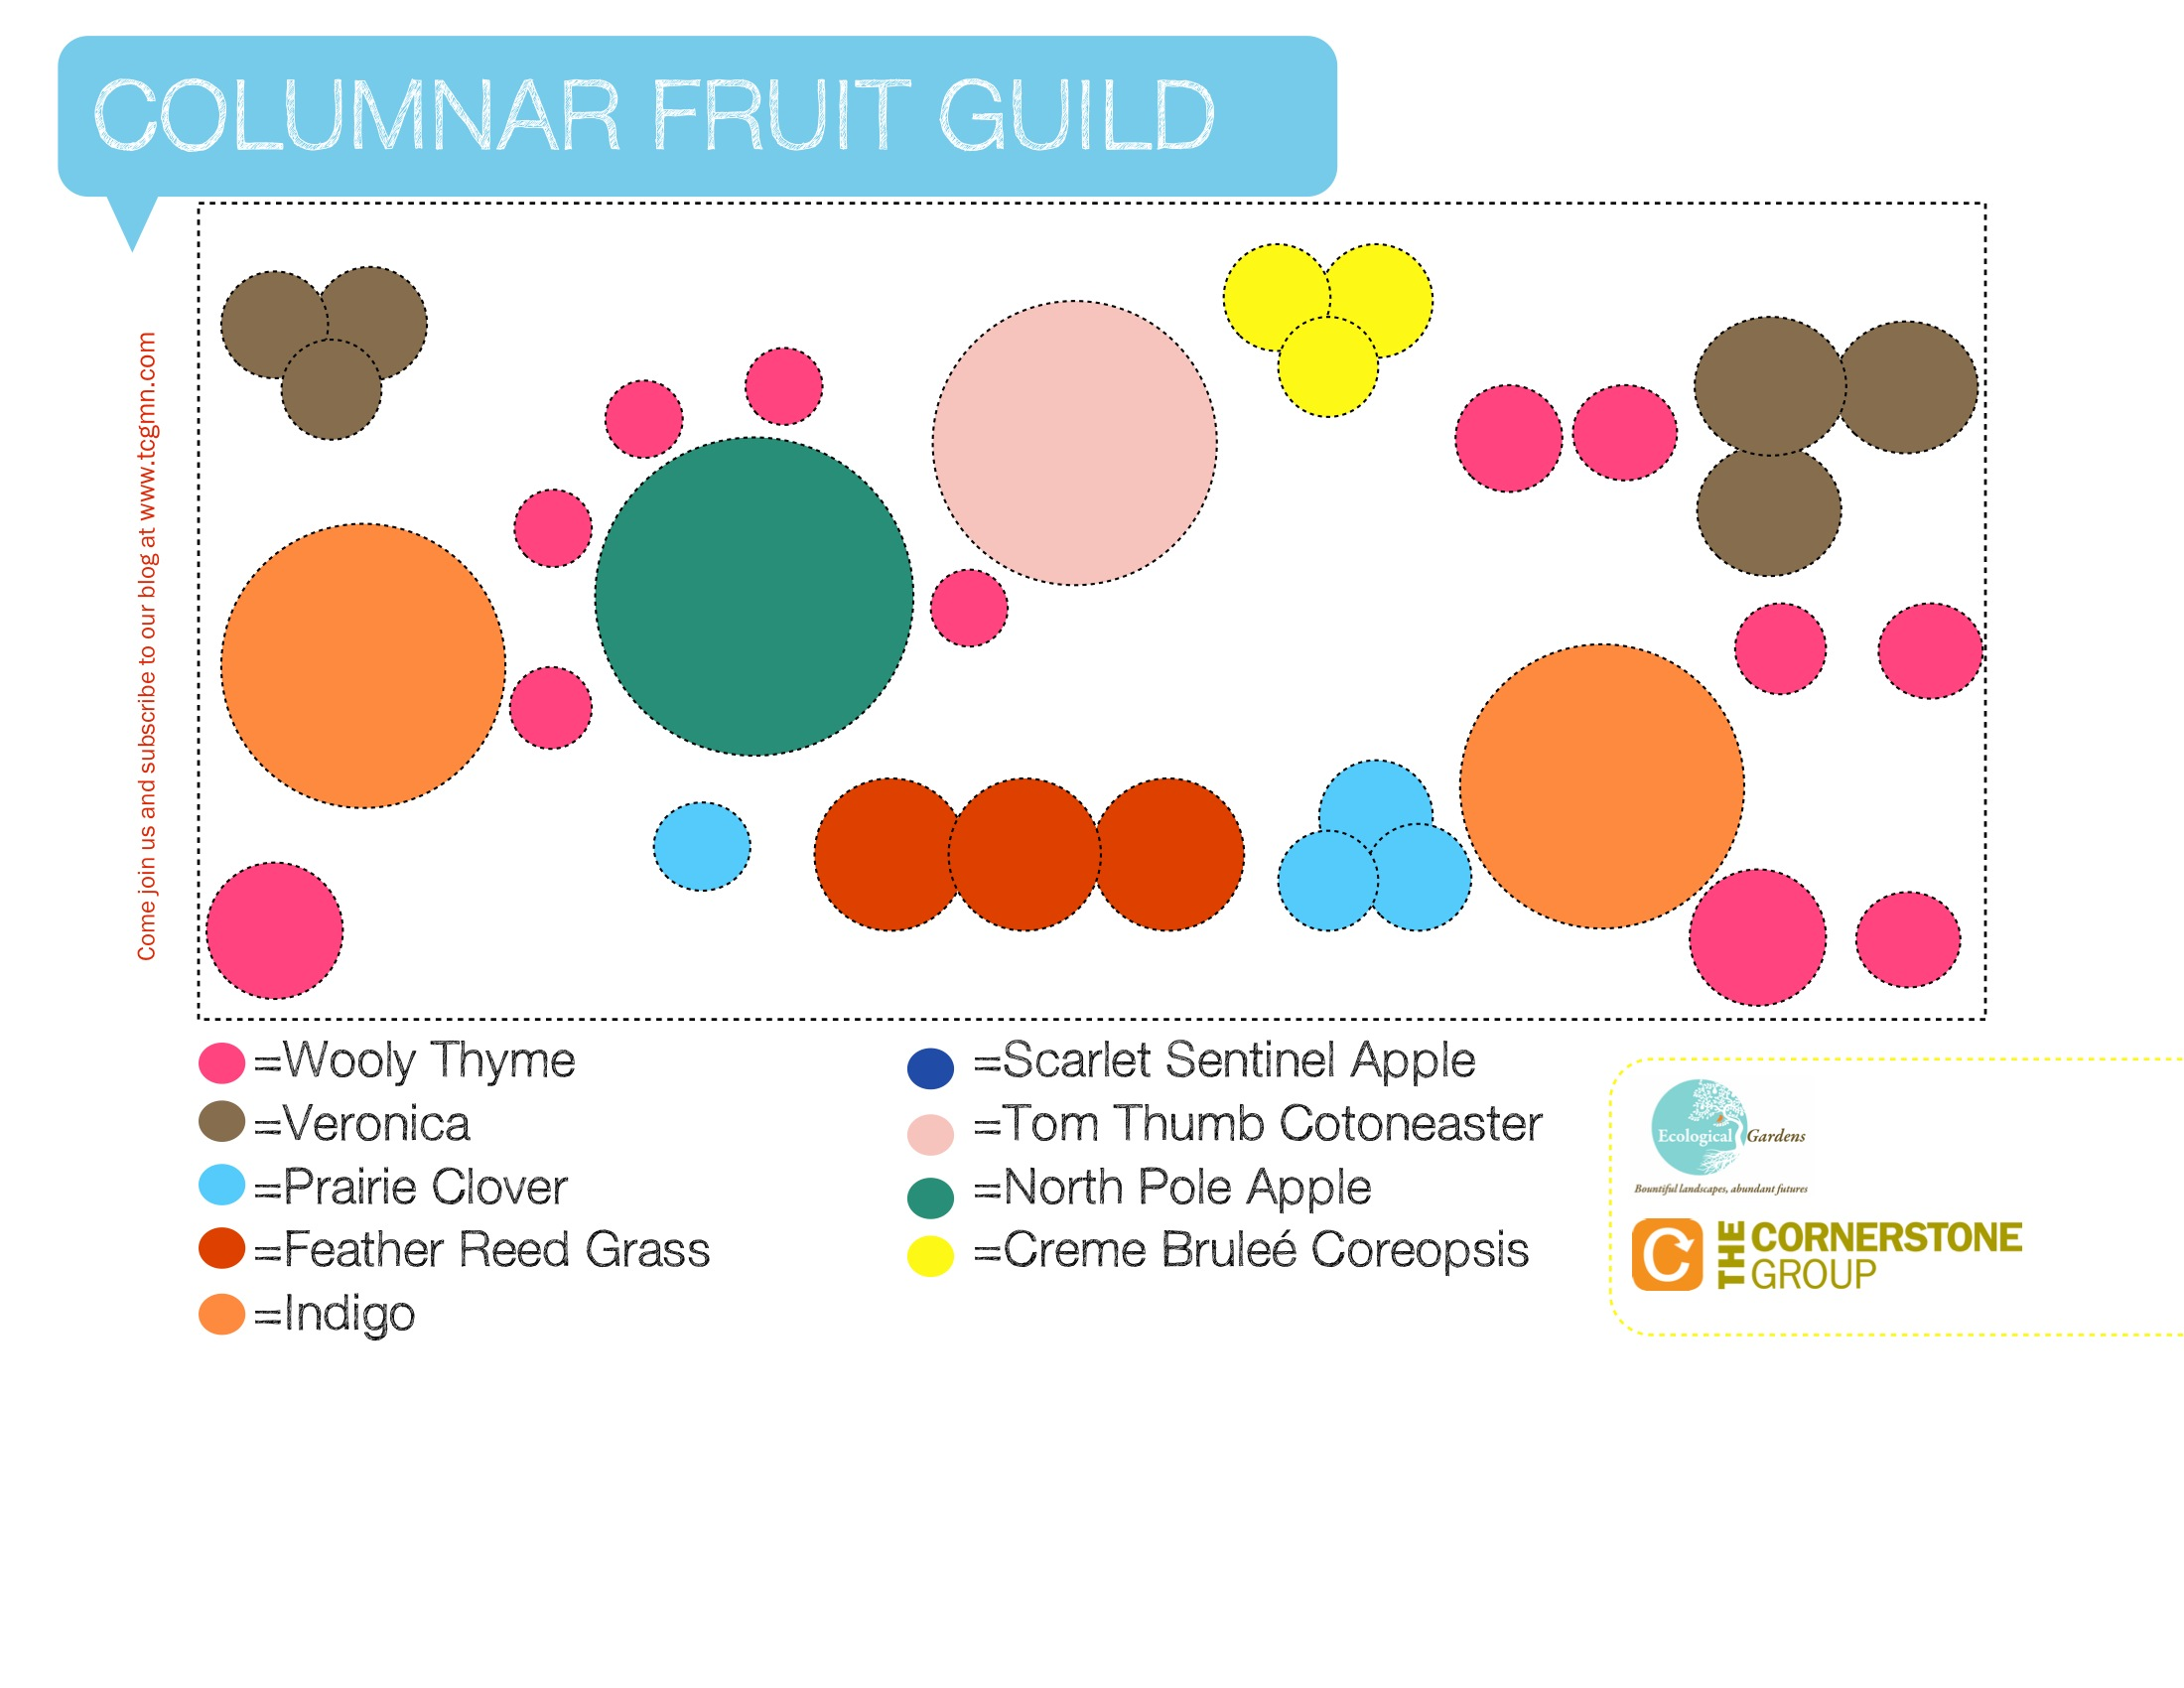 columnar-fruit-guild-2